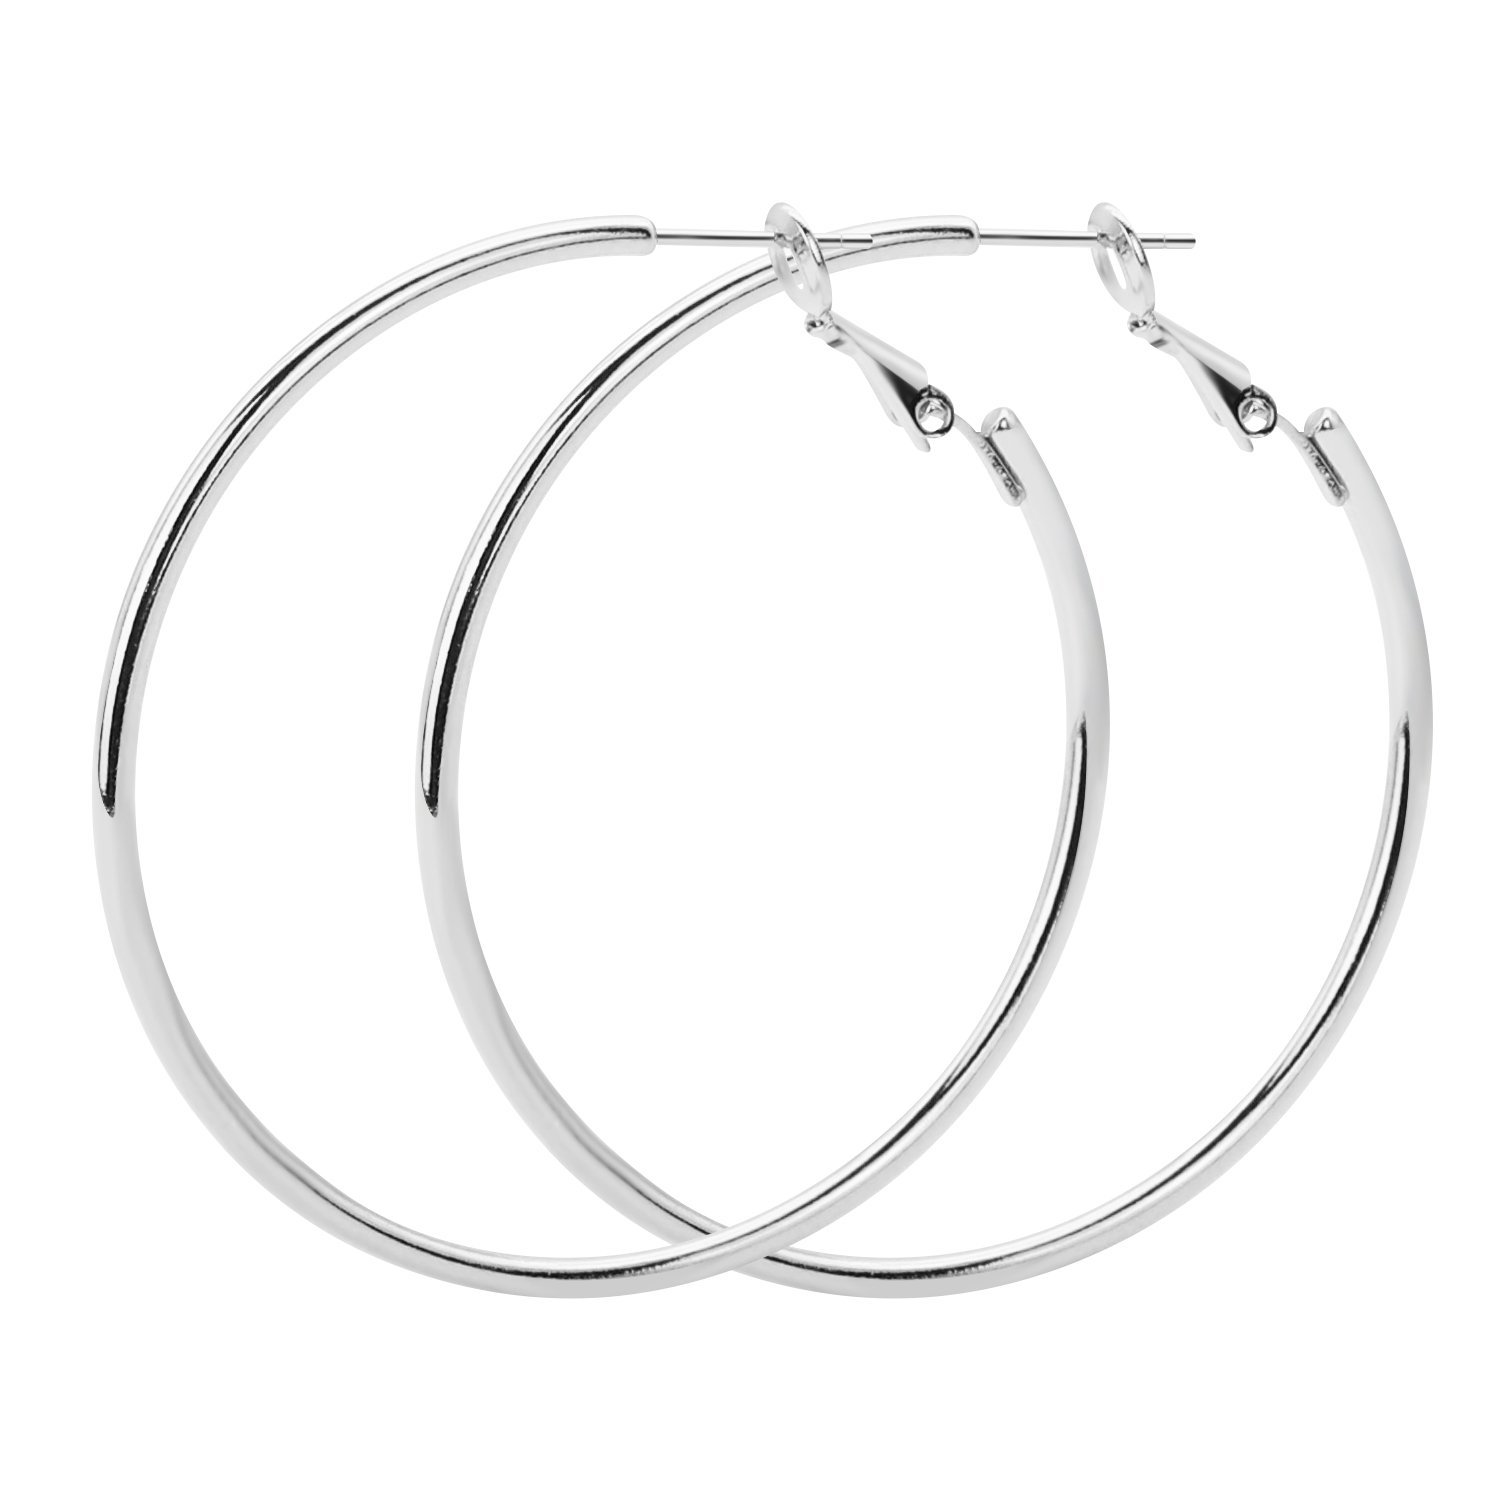 Rugewelry 925 Sterling Silver Hoop Earrings,18K Gold Plated Polished Round Hoop Earrings For Women,Girls' Gifts